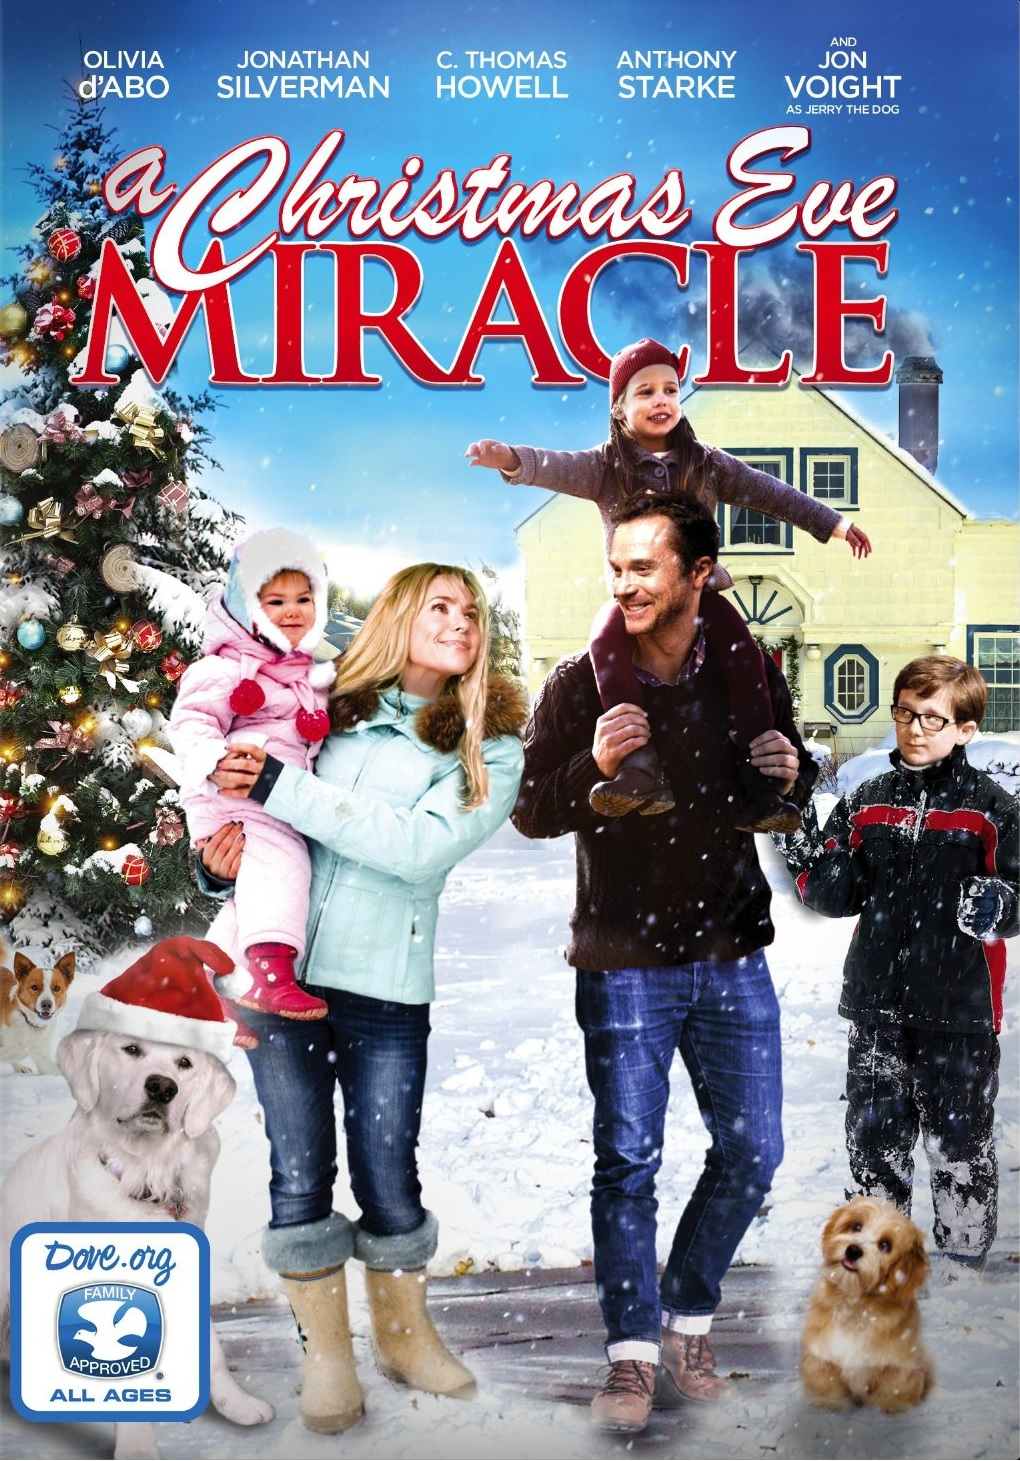 ... Christmas Eve Miracle 2015 – Watch Movie and TV Show PubFilm HD Free